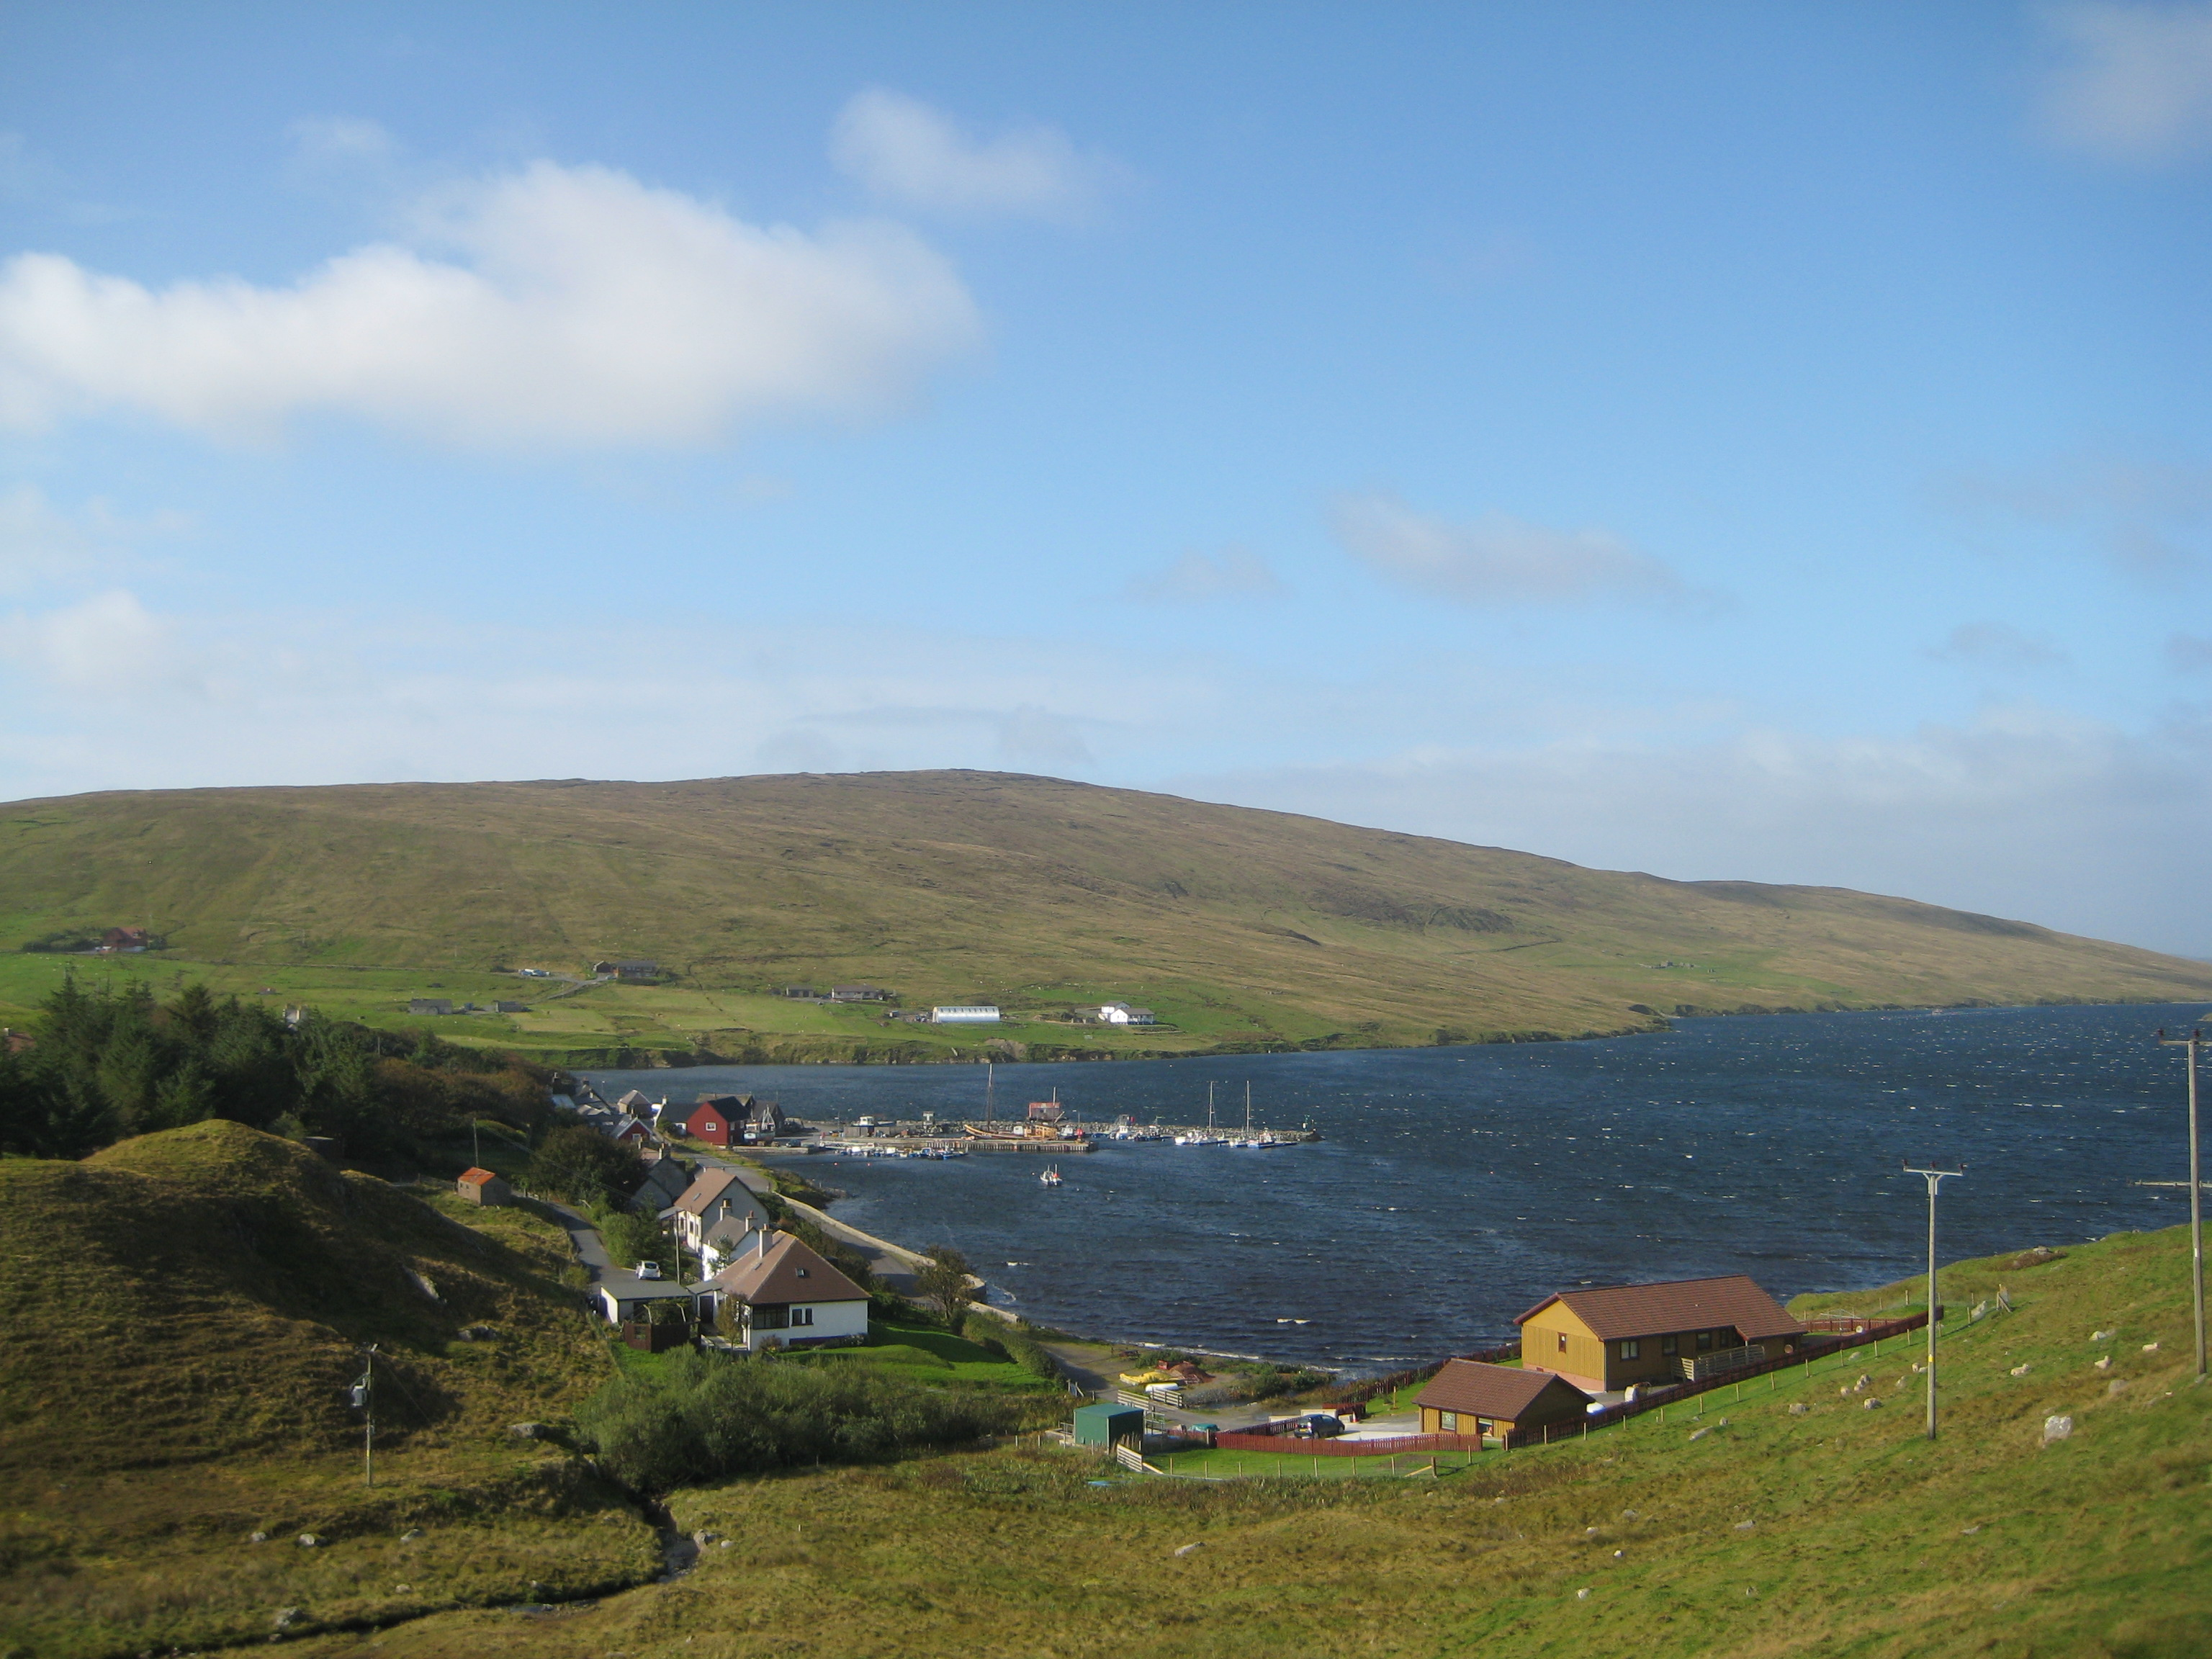 Pretty village of Voe, on my way back from The North